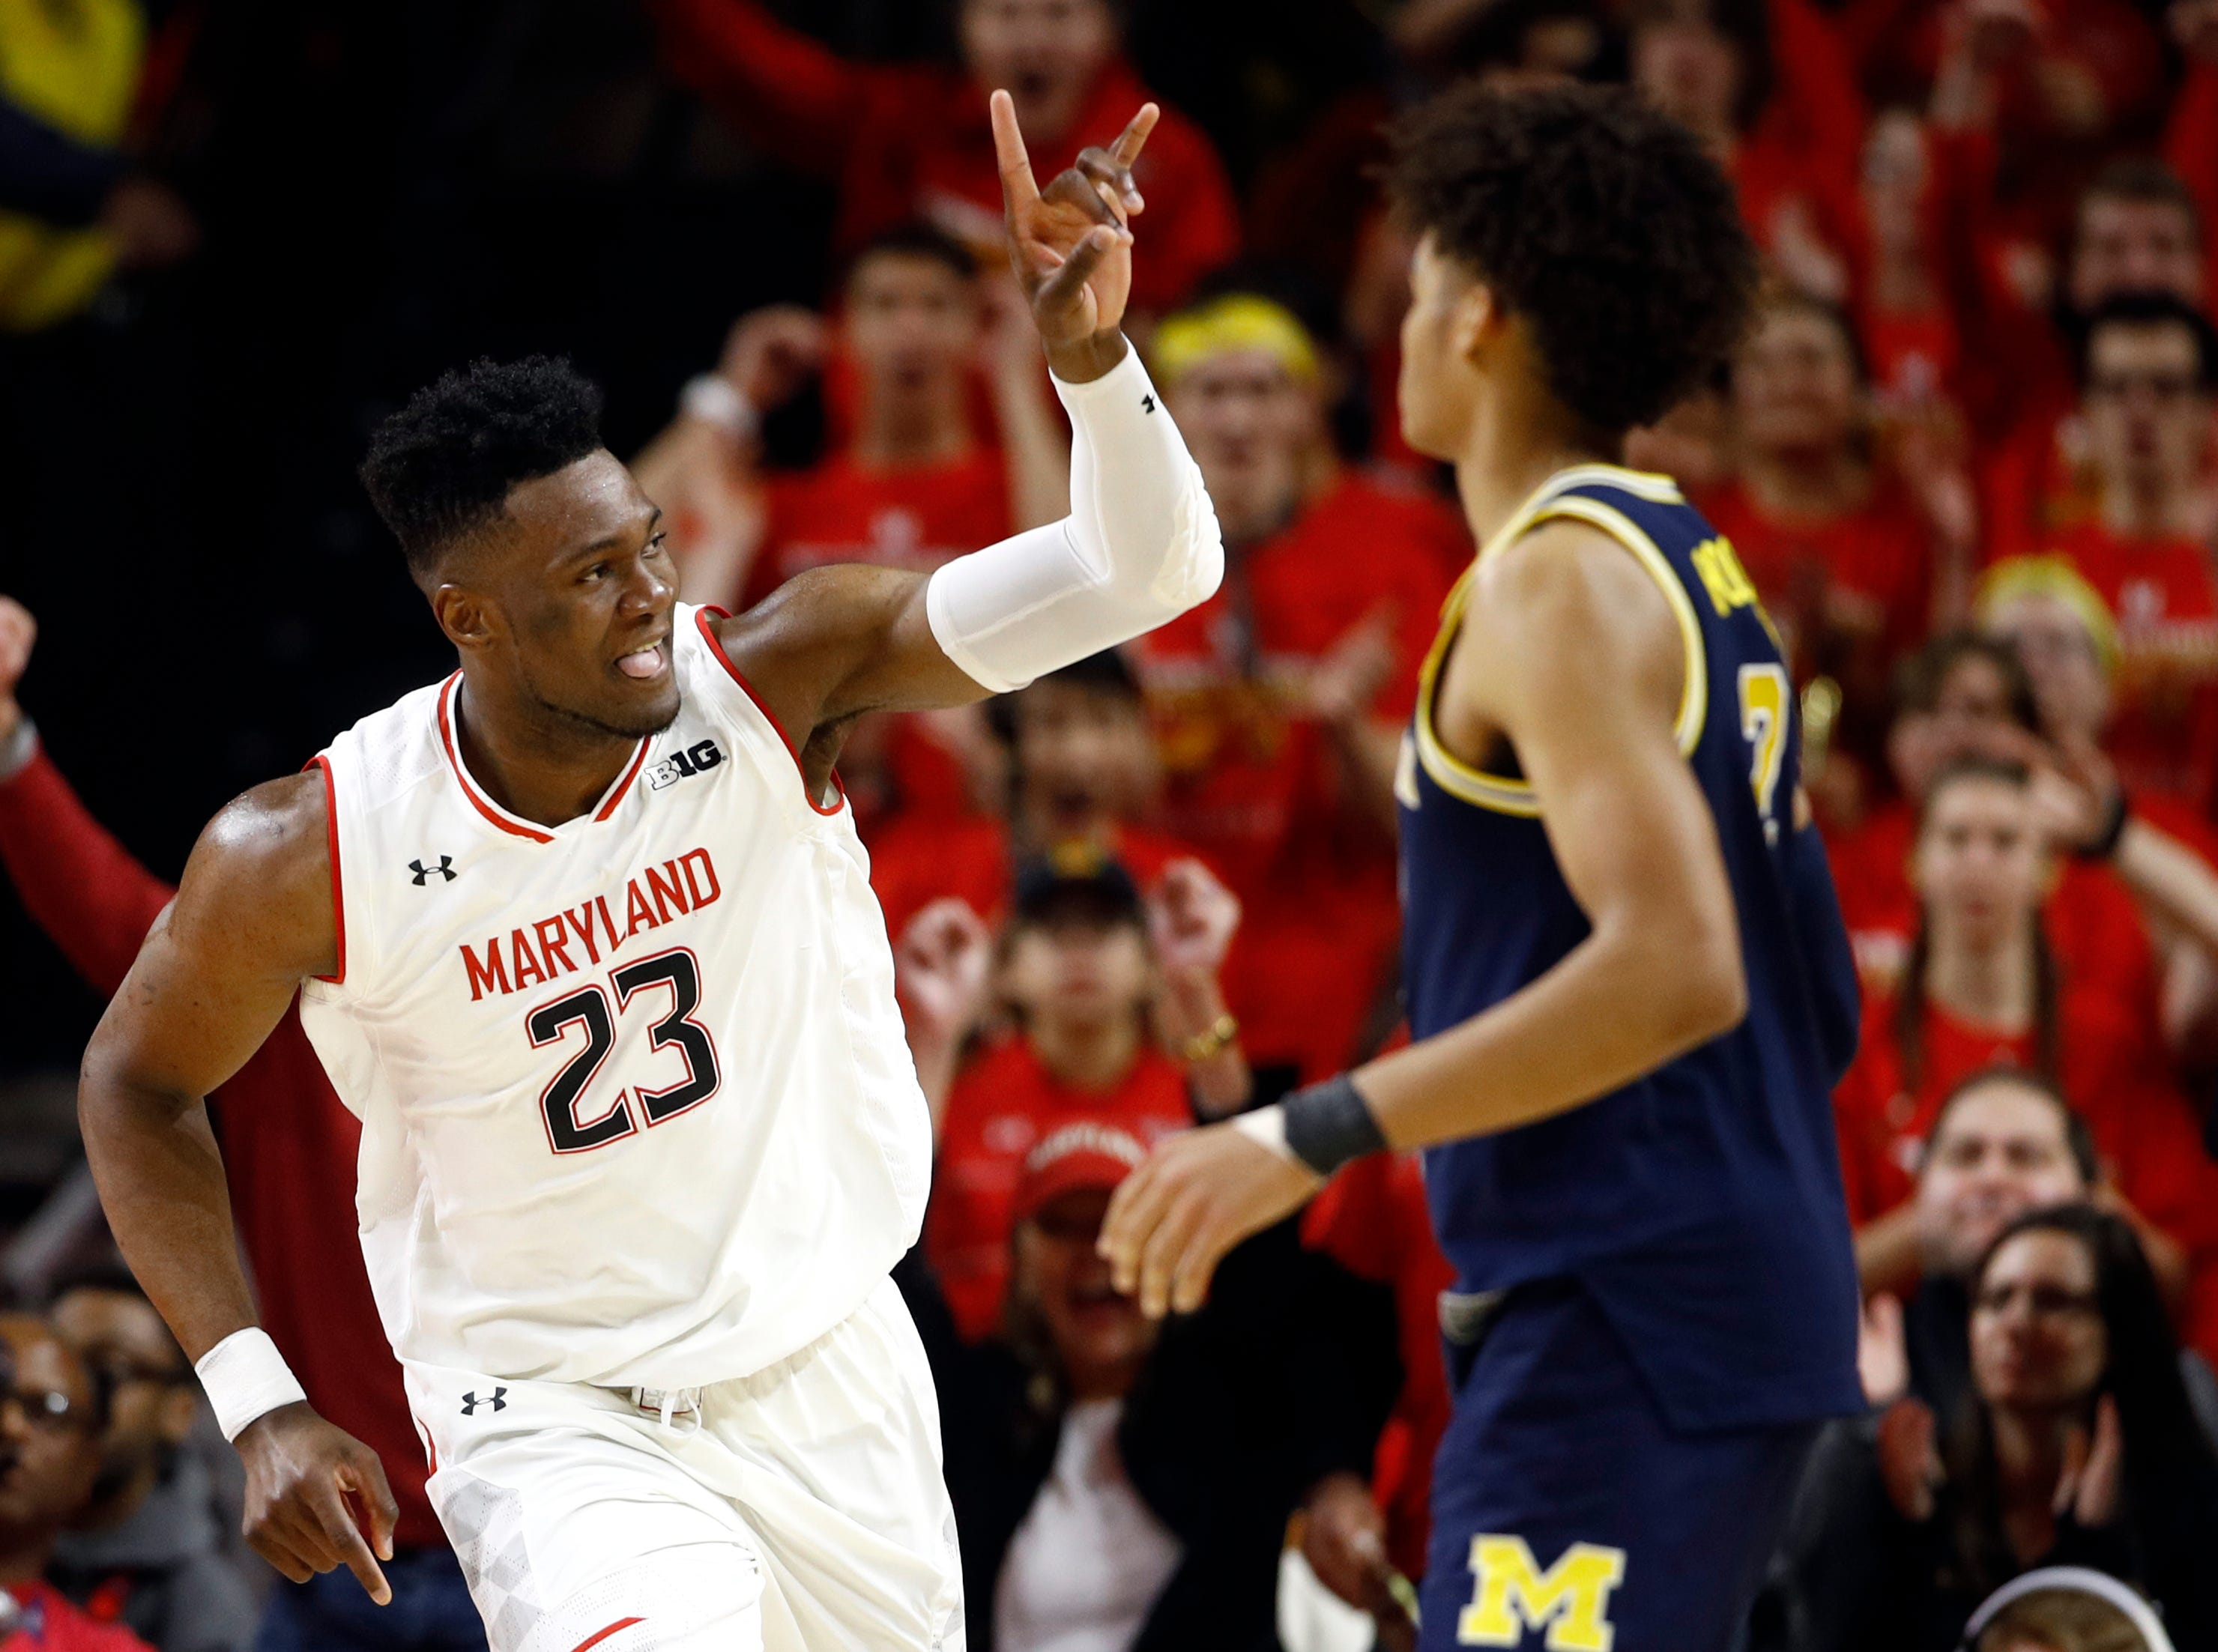 Maryland forward Bruno Fernando (23), of Angola, gestures in front of Michigan guard Jordan Poole after making a basket in the first half.